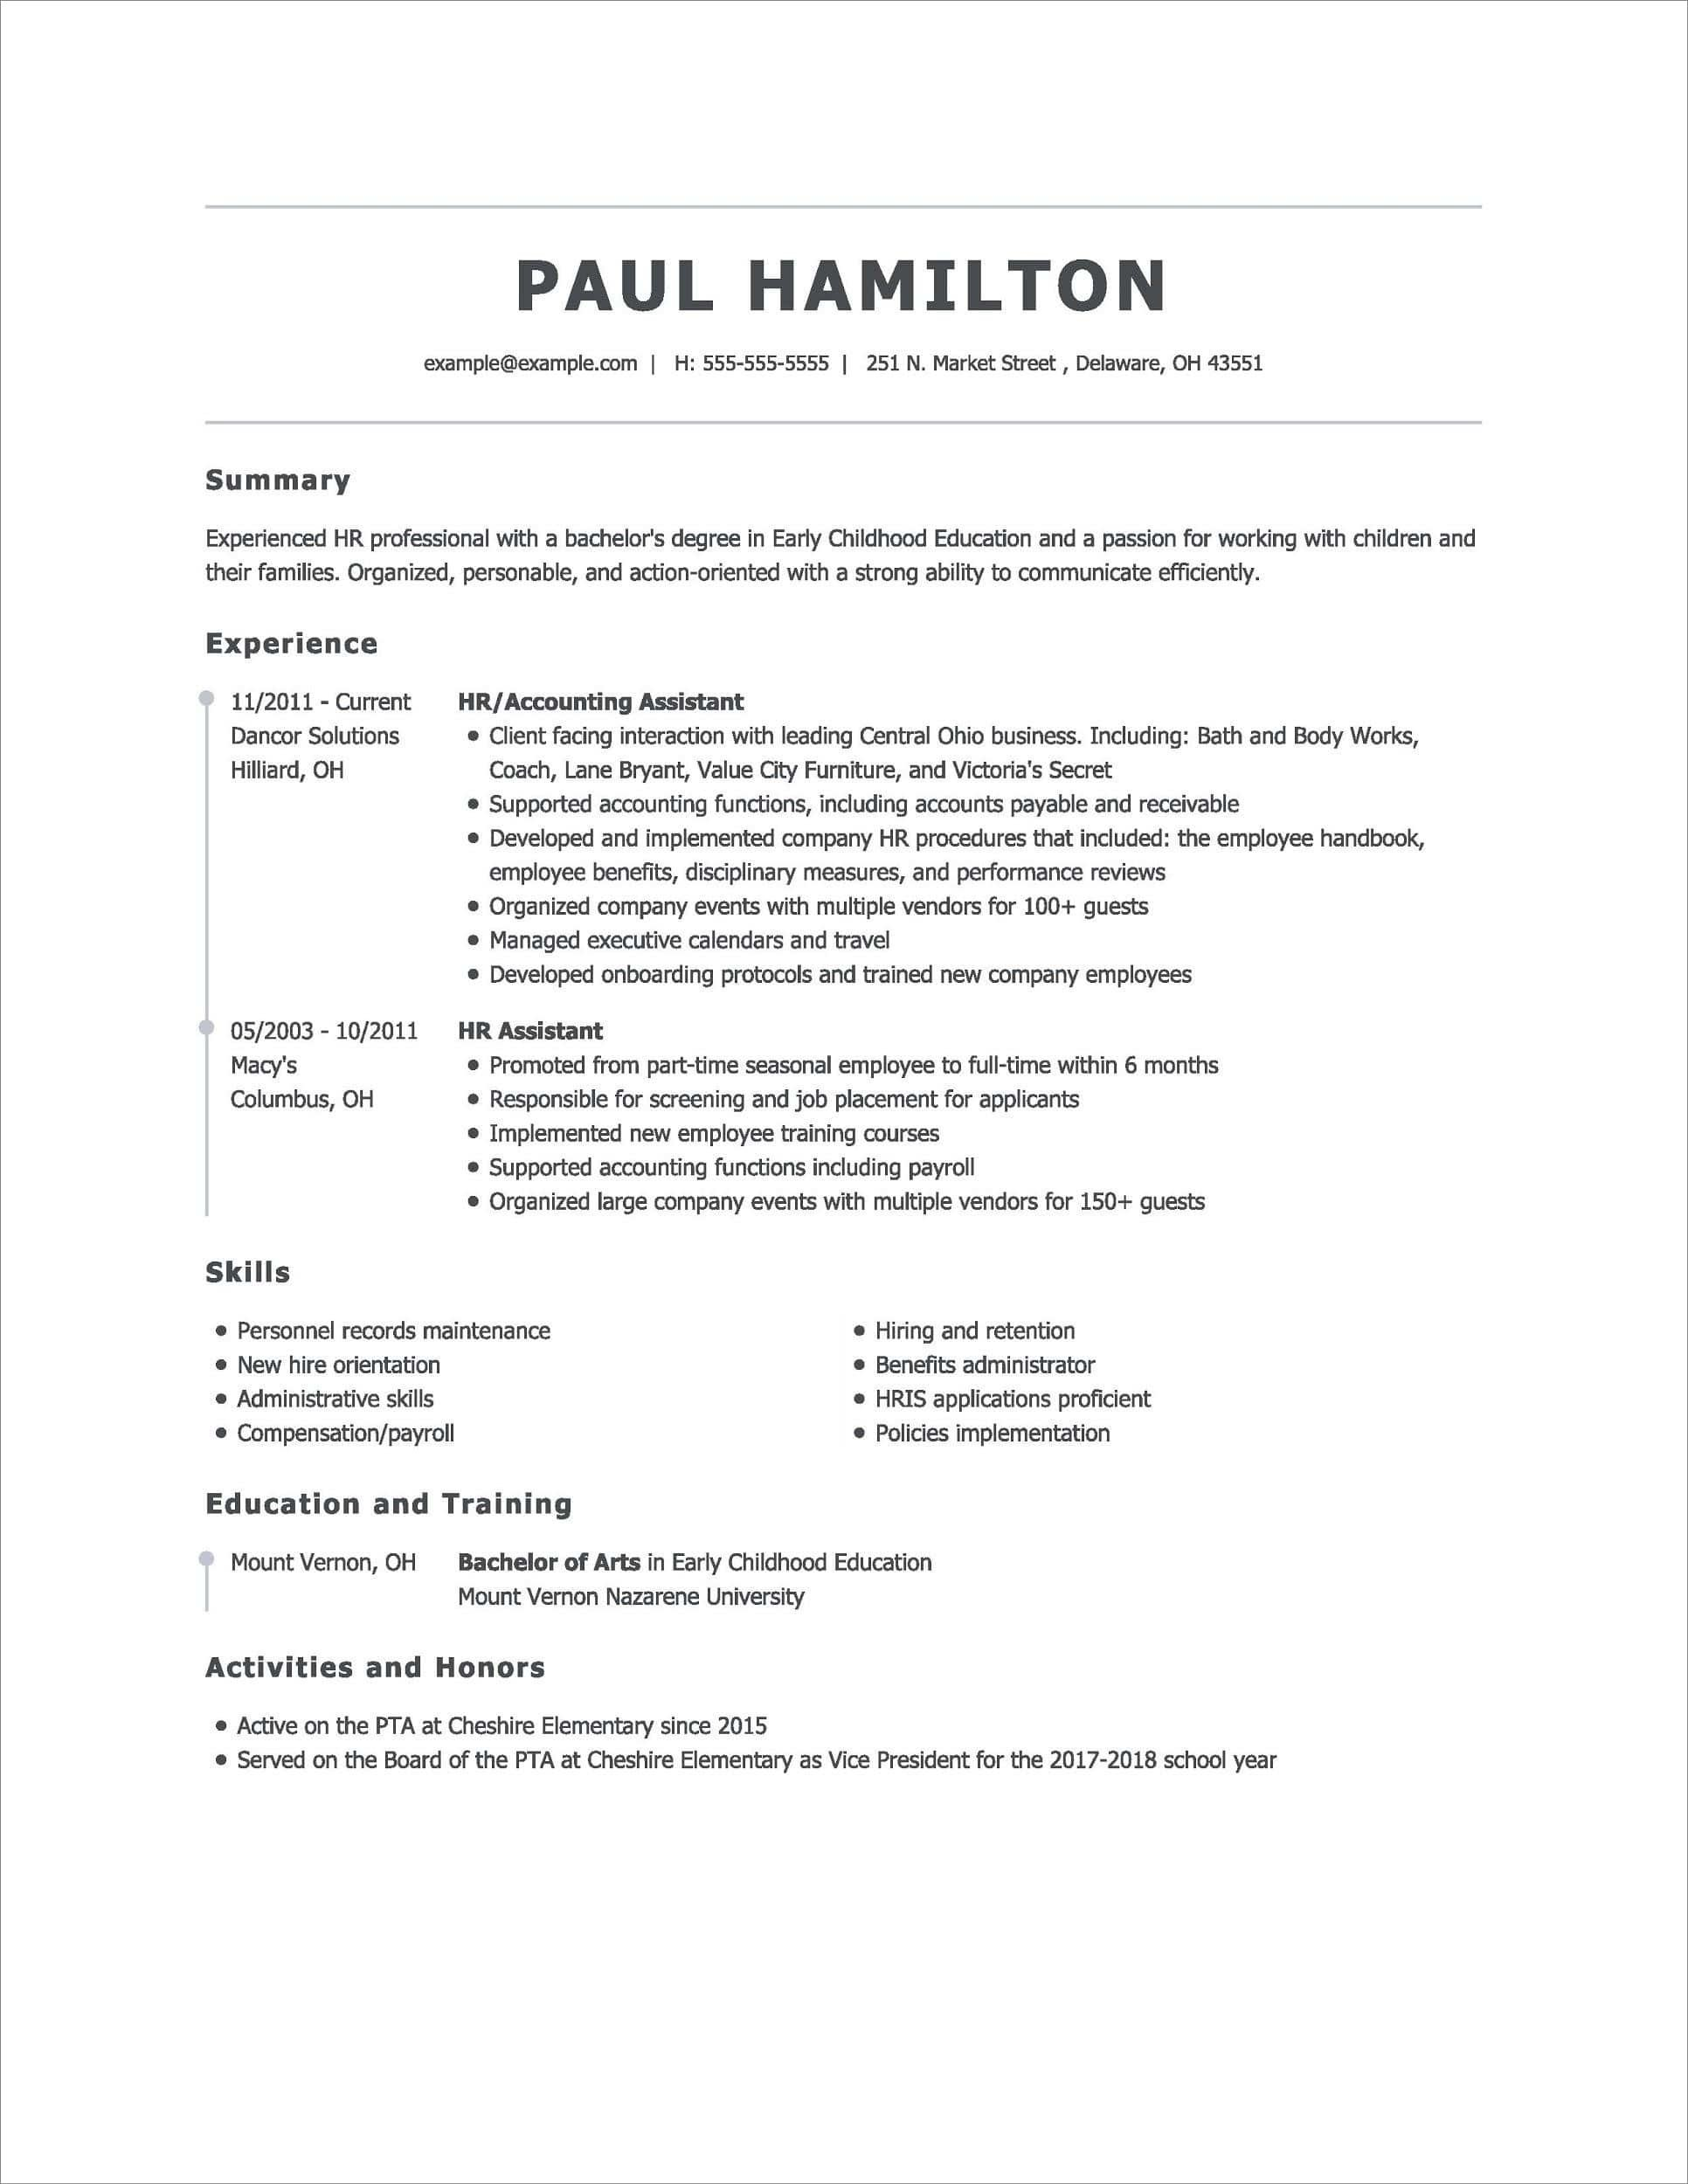 best resume builders free paid features format for applications teacher examples physical Resume Best Resume Format For Online Applications